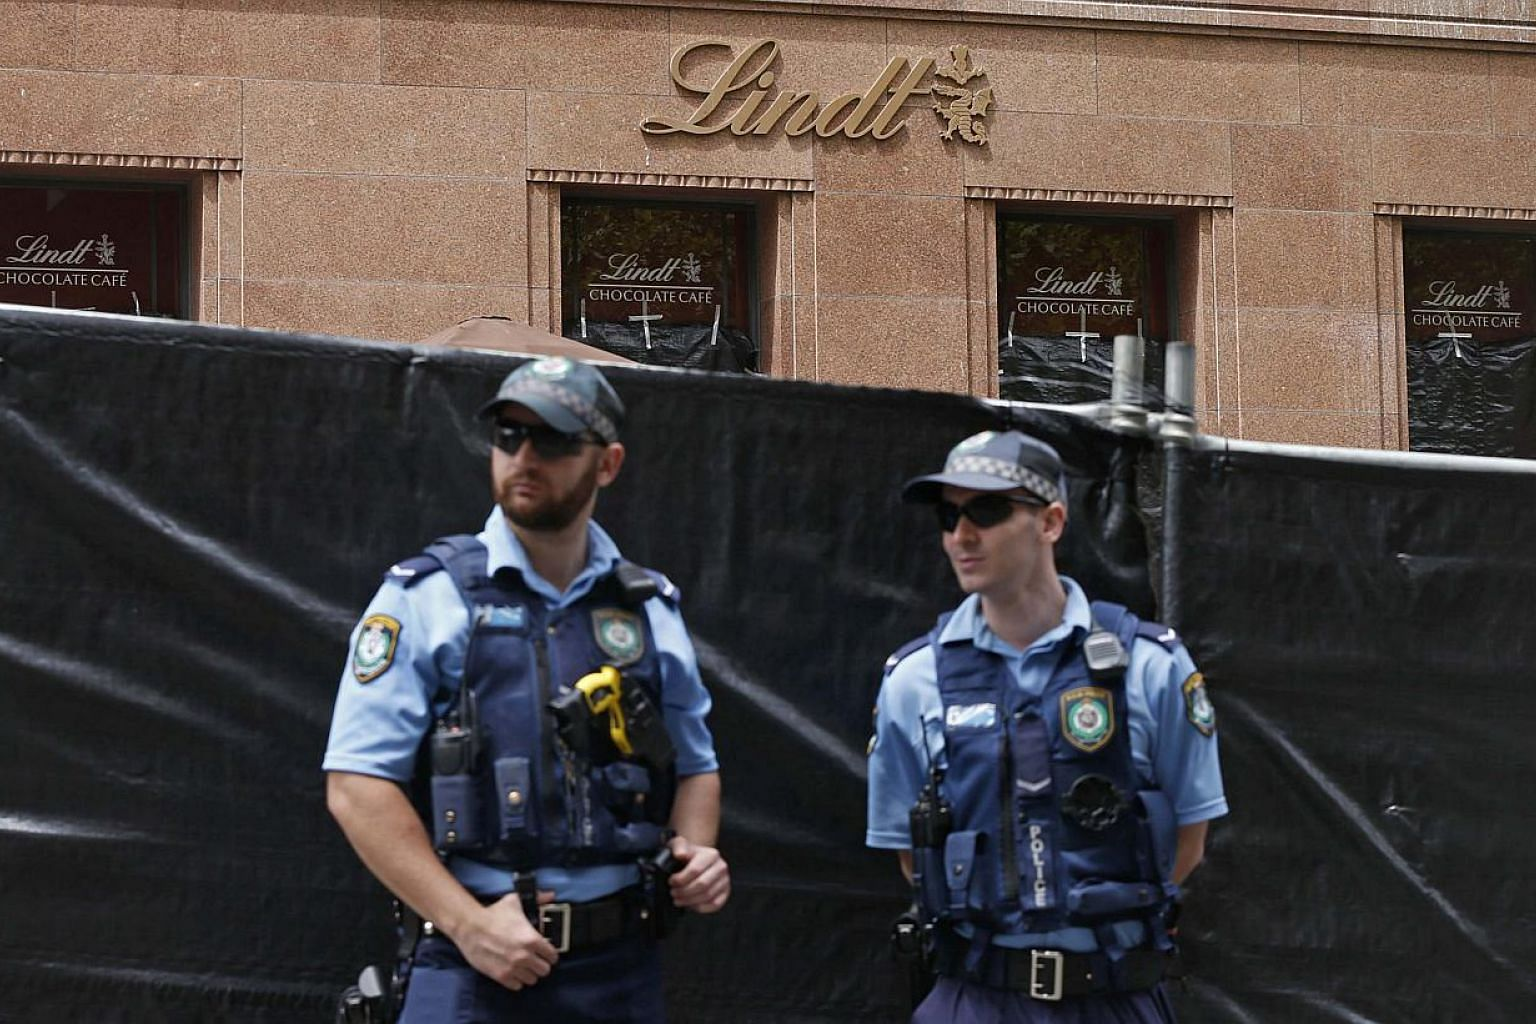 New South Wales police officers guard a post near the fenced-off site of the siege at the Lindt cafe in Martin Place, Sydney, Australia on Dec 17, 2014. -- PHOTO: REUTERS